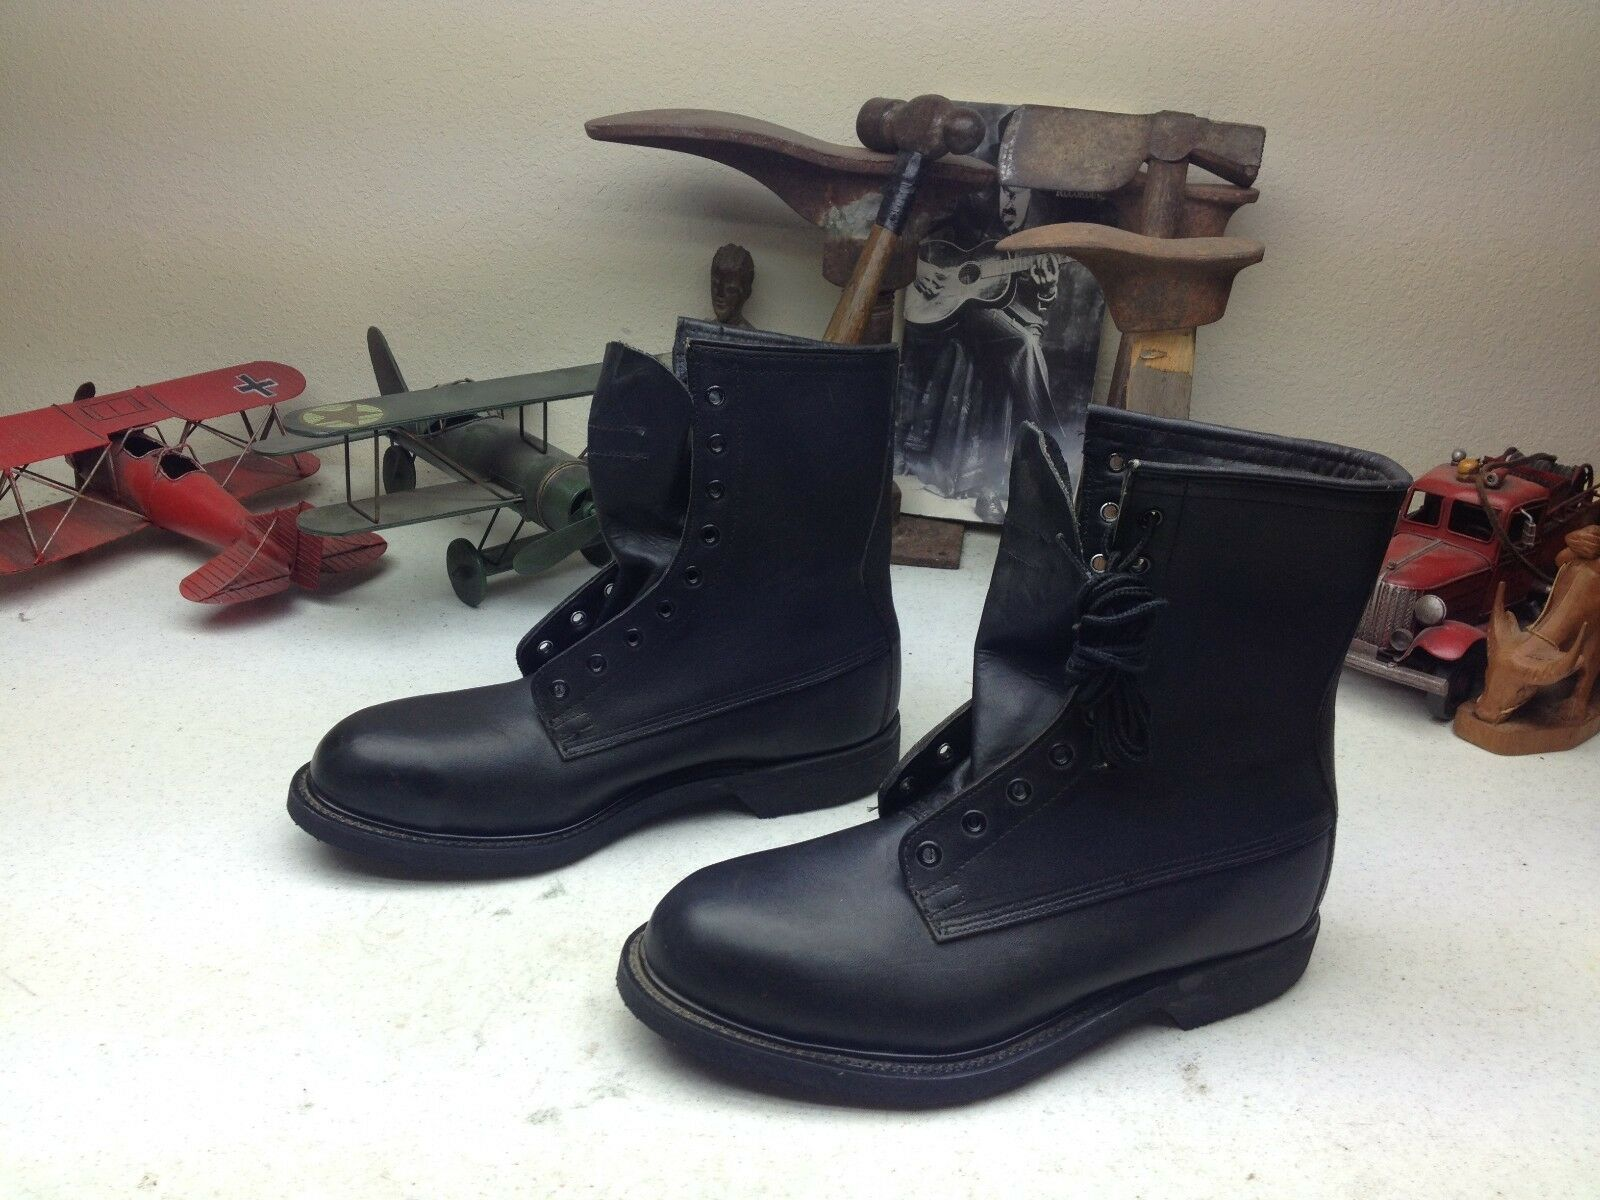 1994 STEEL LEATHER TOE WOLVERINE MILITARY BLACK LEATHER STEEL LACE UP ENGINEER BOSS Stiefel 7.5W 3eb305